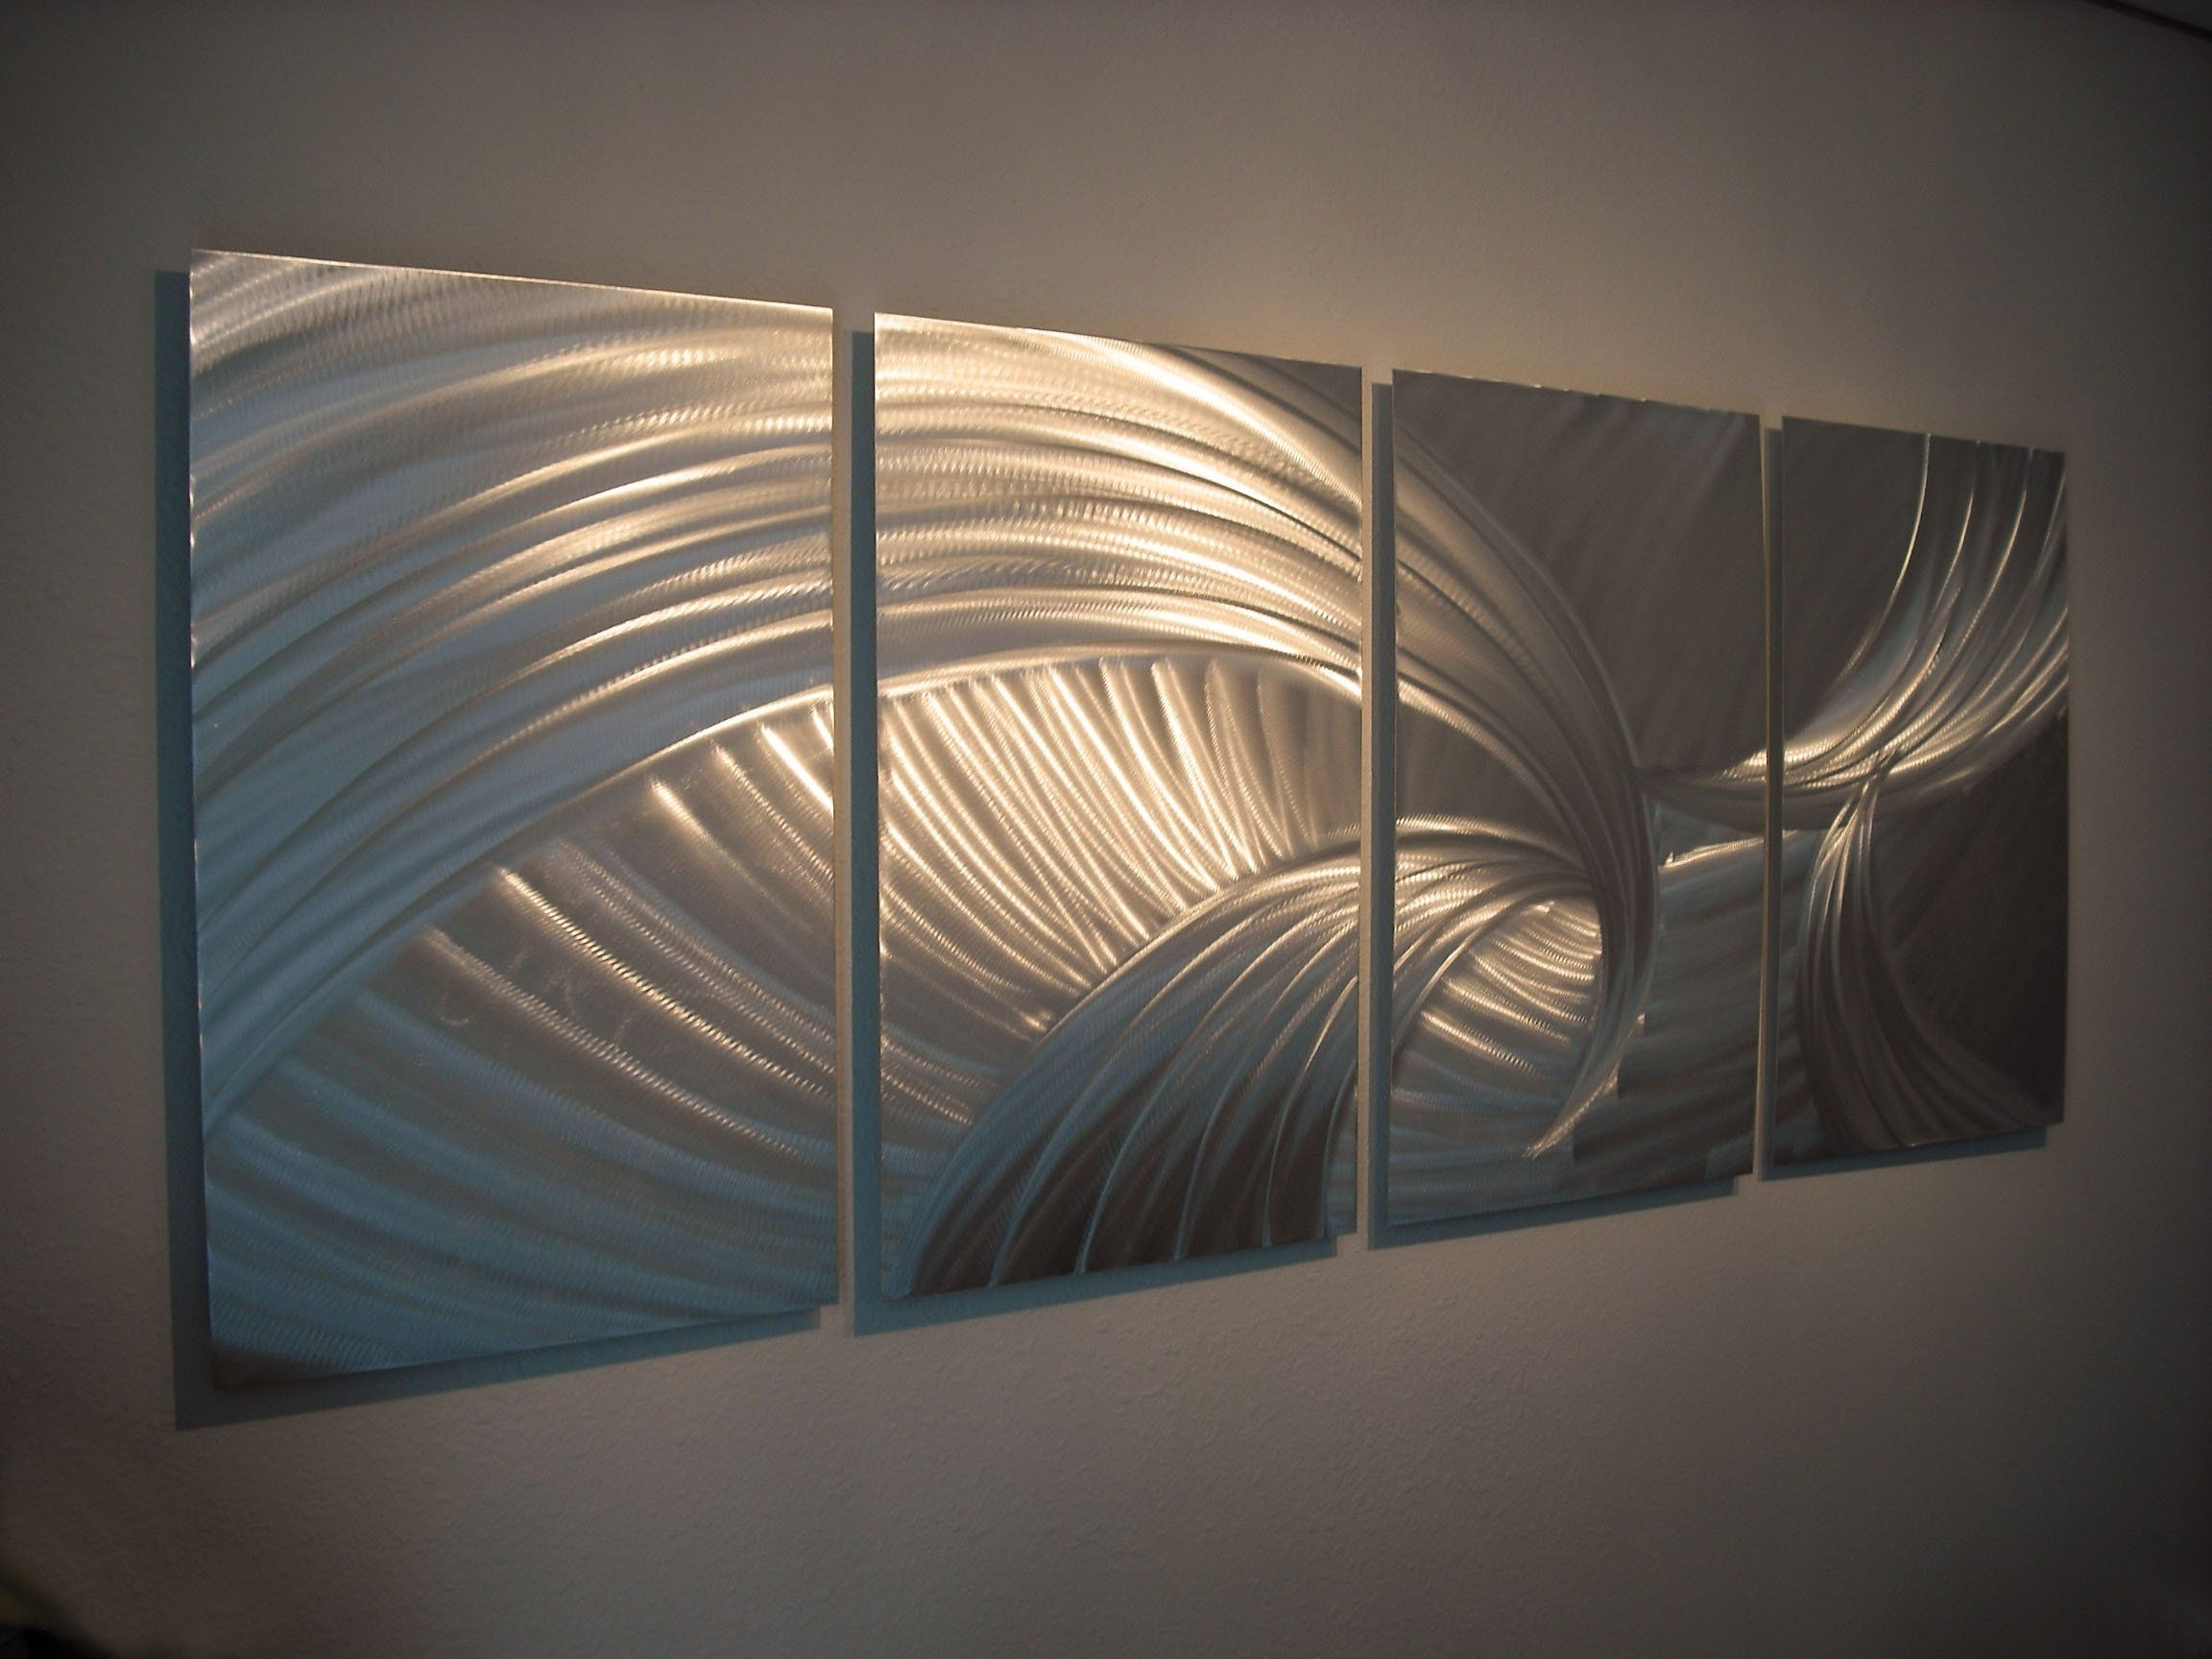 Contemporary Metal Wall Art In Latest Metal Wall Art, Modern Home Decor, Abstract Wall Sculpture (View 3 of 15)